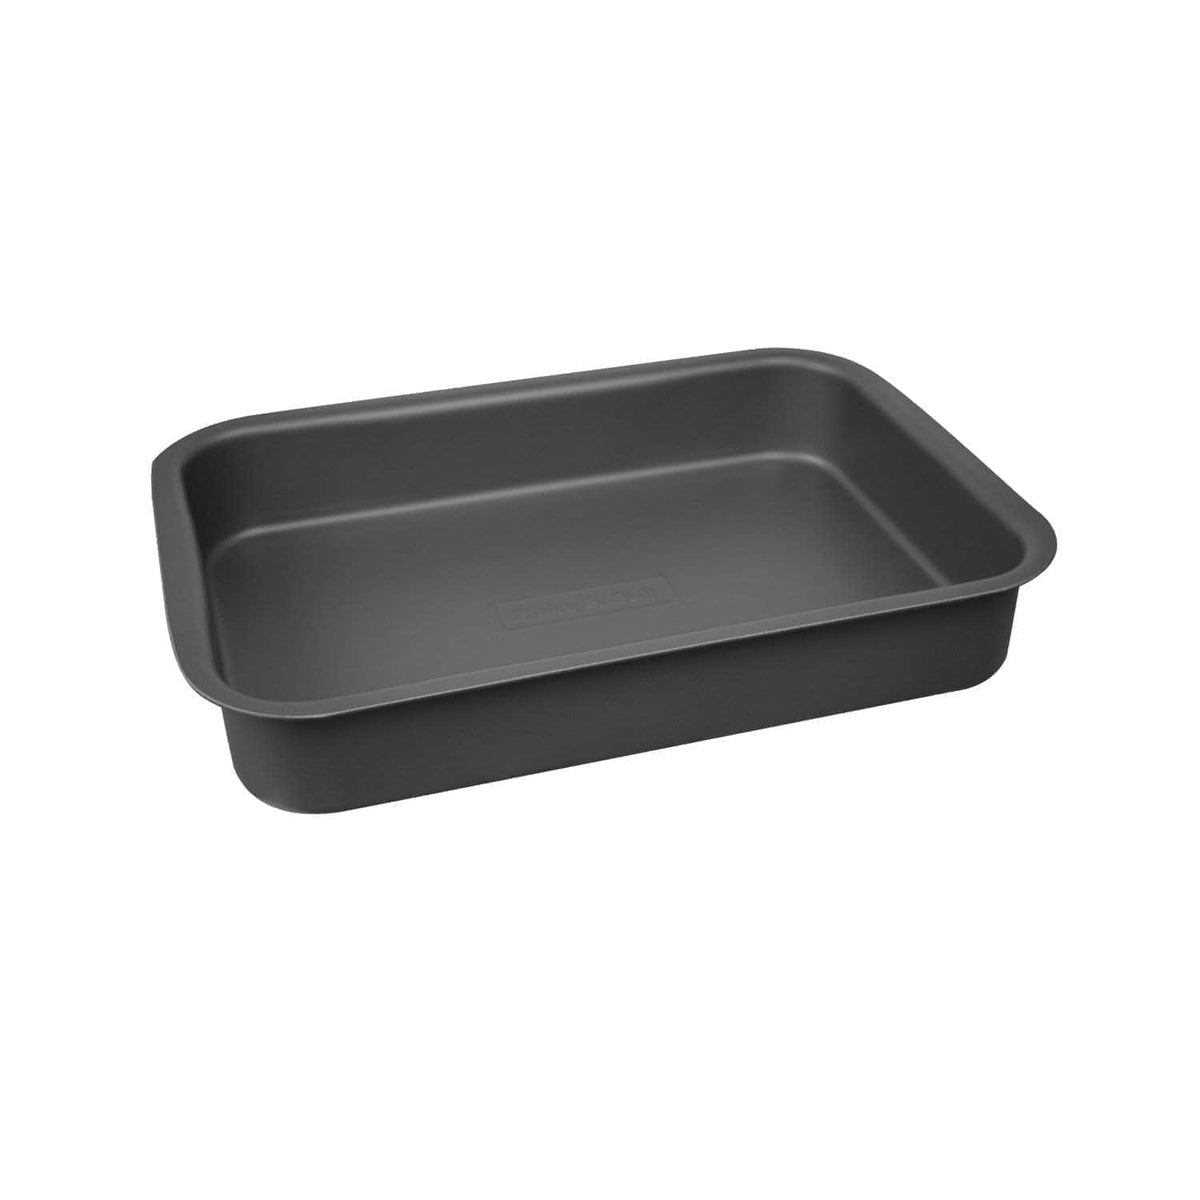 'Fits on runners' roasting tin for use with Aga range cookers 'half oven' size I only need an individual tin thank you! / Black